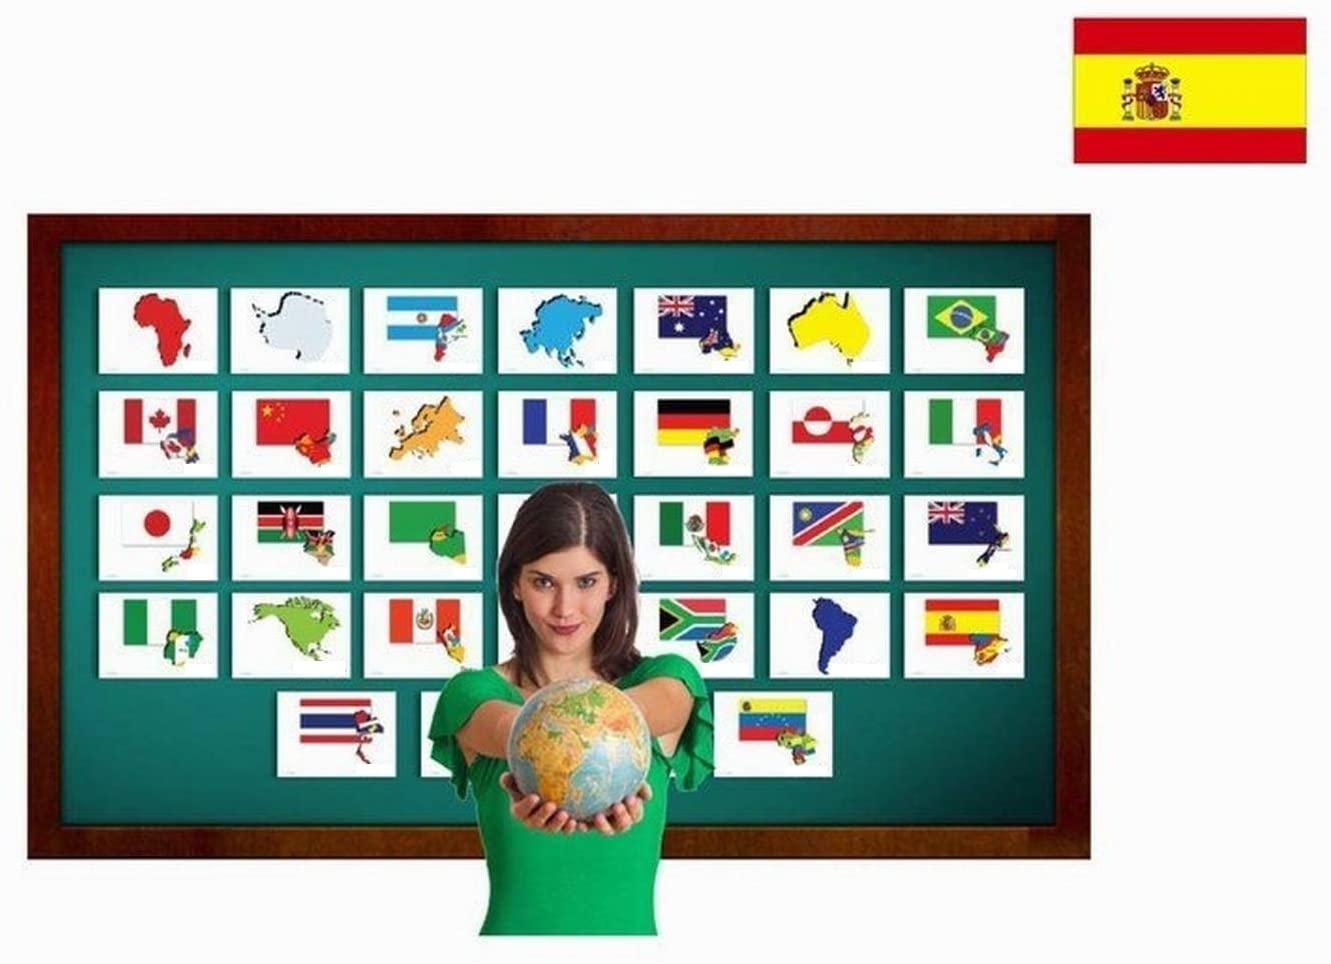 Tarjetas de vocabulario - Países y Banderas - Countries and Flags Flashcards in Spanish - Vocabulary Picture Cards for Language Learning